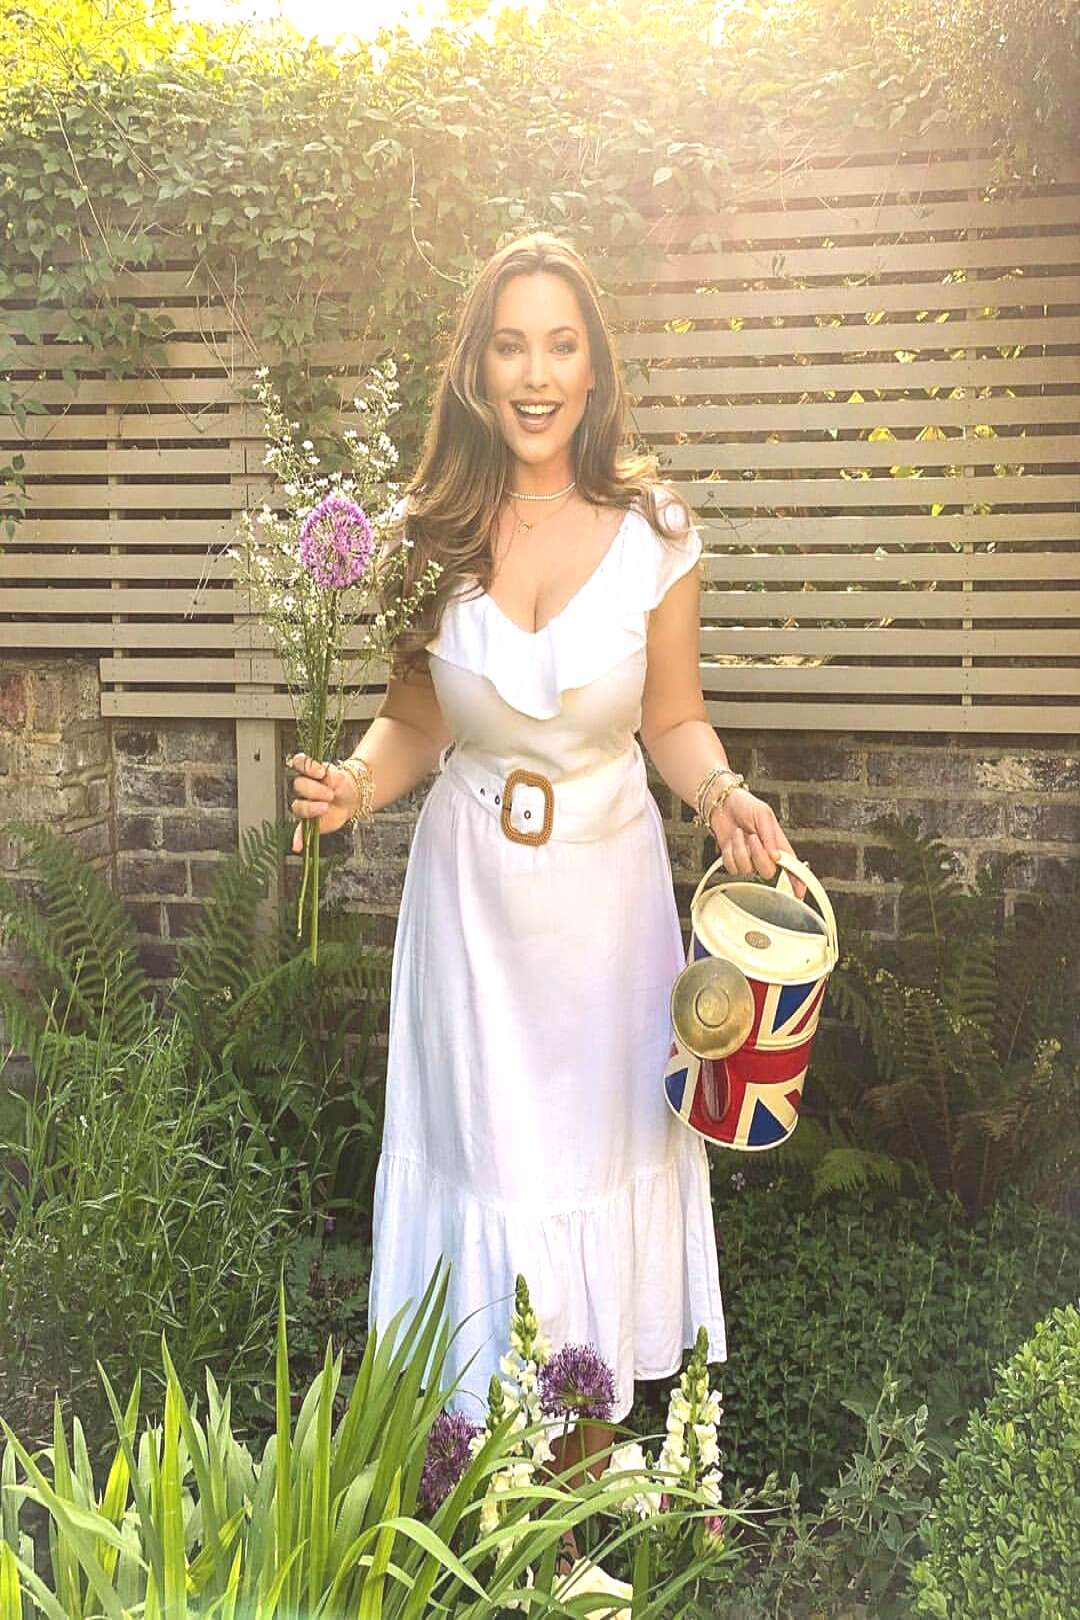 Kelly Brook on May 29 2020 1 person standing and outdoor